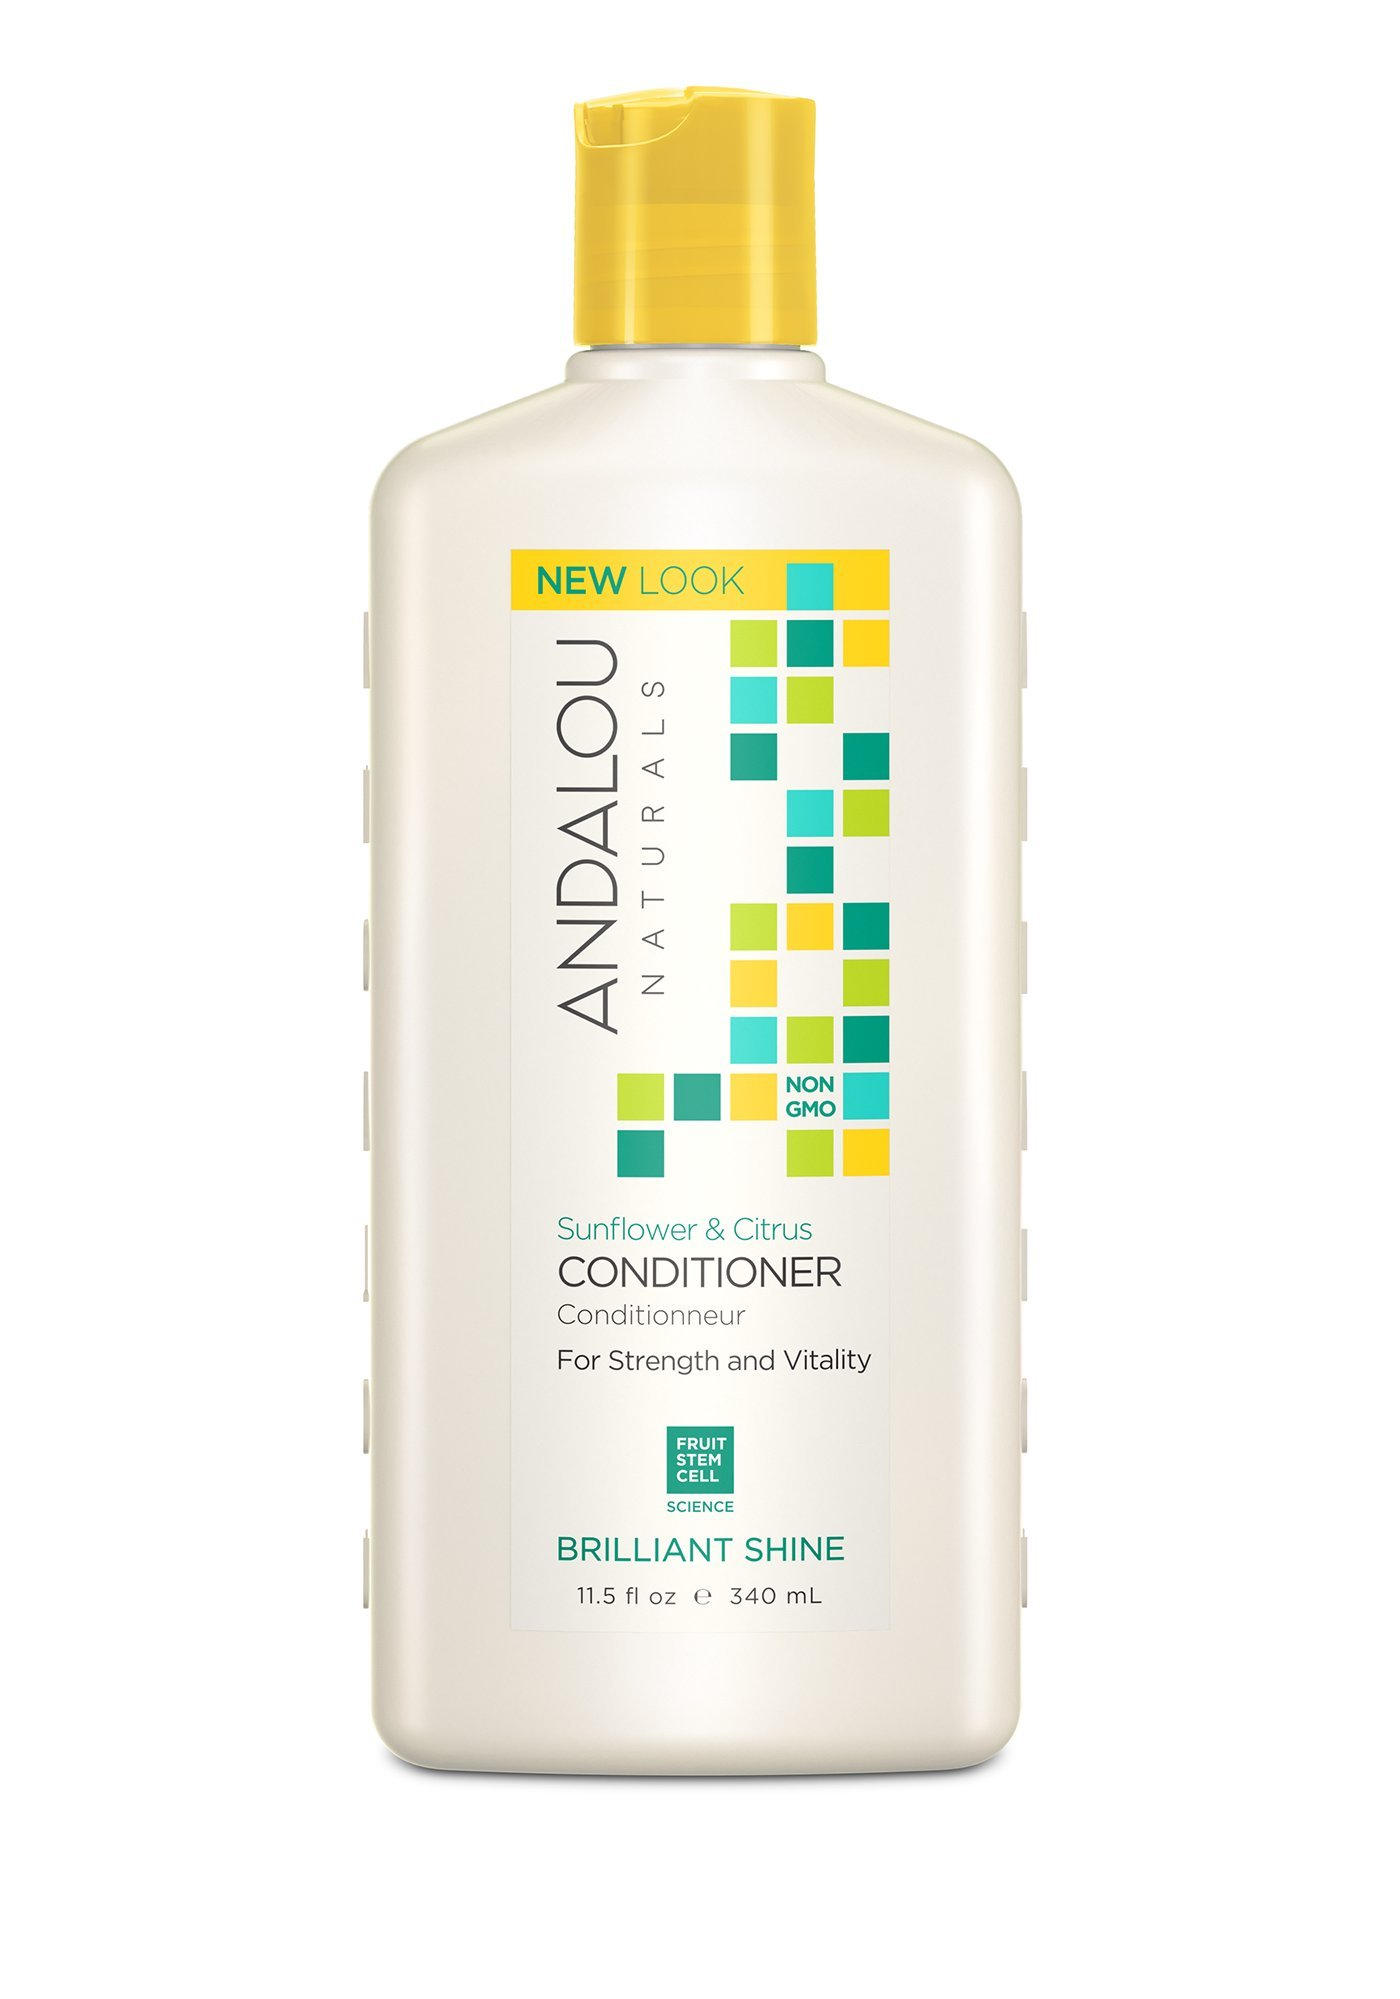 Andalou Naturals Sunflower & Citrus Brilliant Shine Conditioner, 11.5 oz, Helps Give Hair Smooth Shine & De-Frizz Split Ends by Andalou Naturals (Image #4)